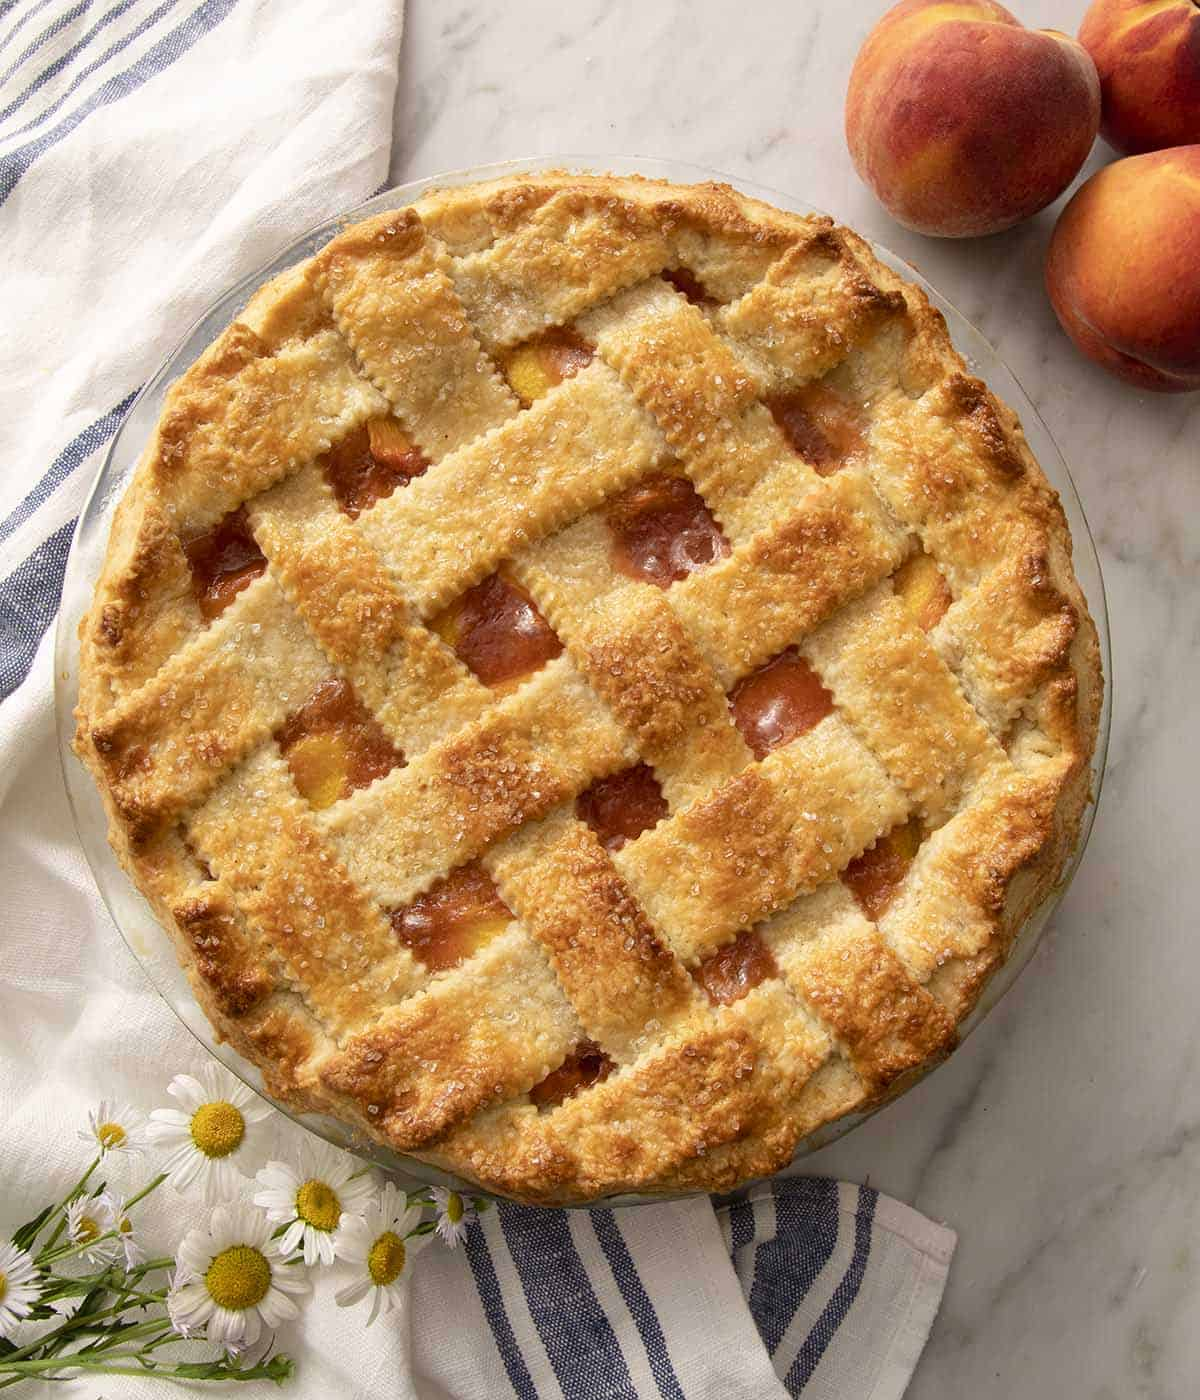 A peach pie with a pastry lattice on a marble counter.